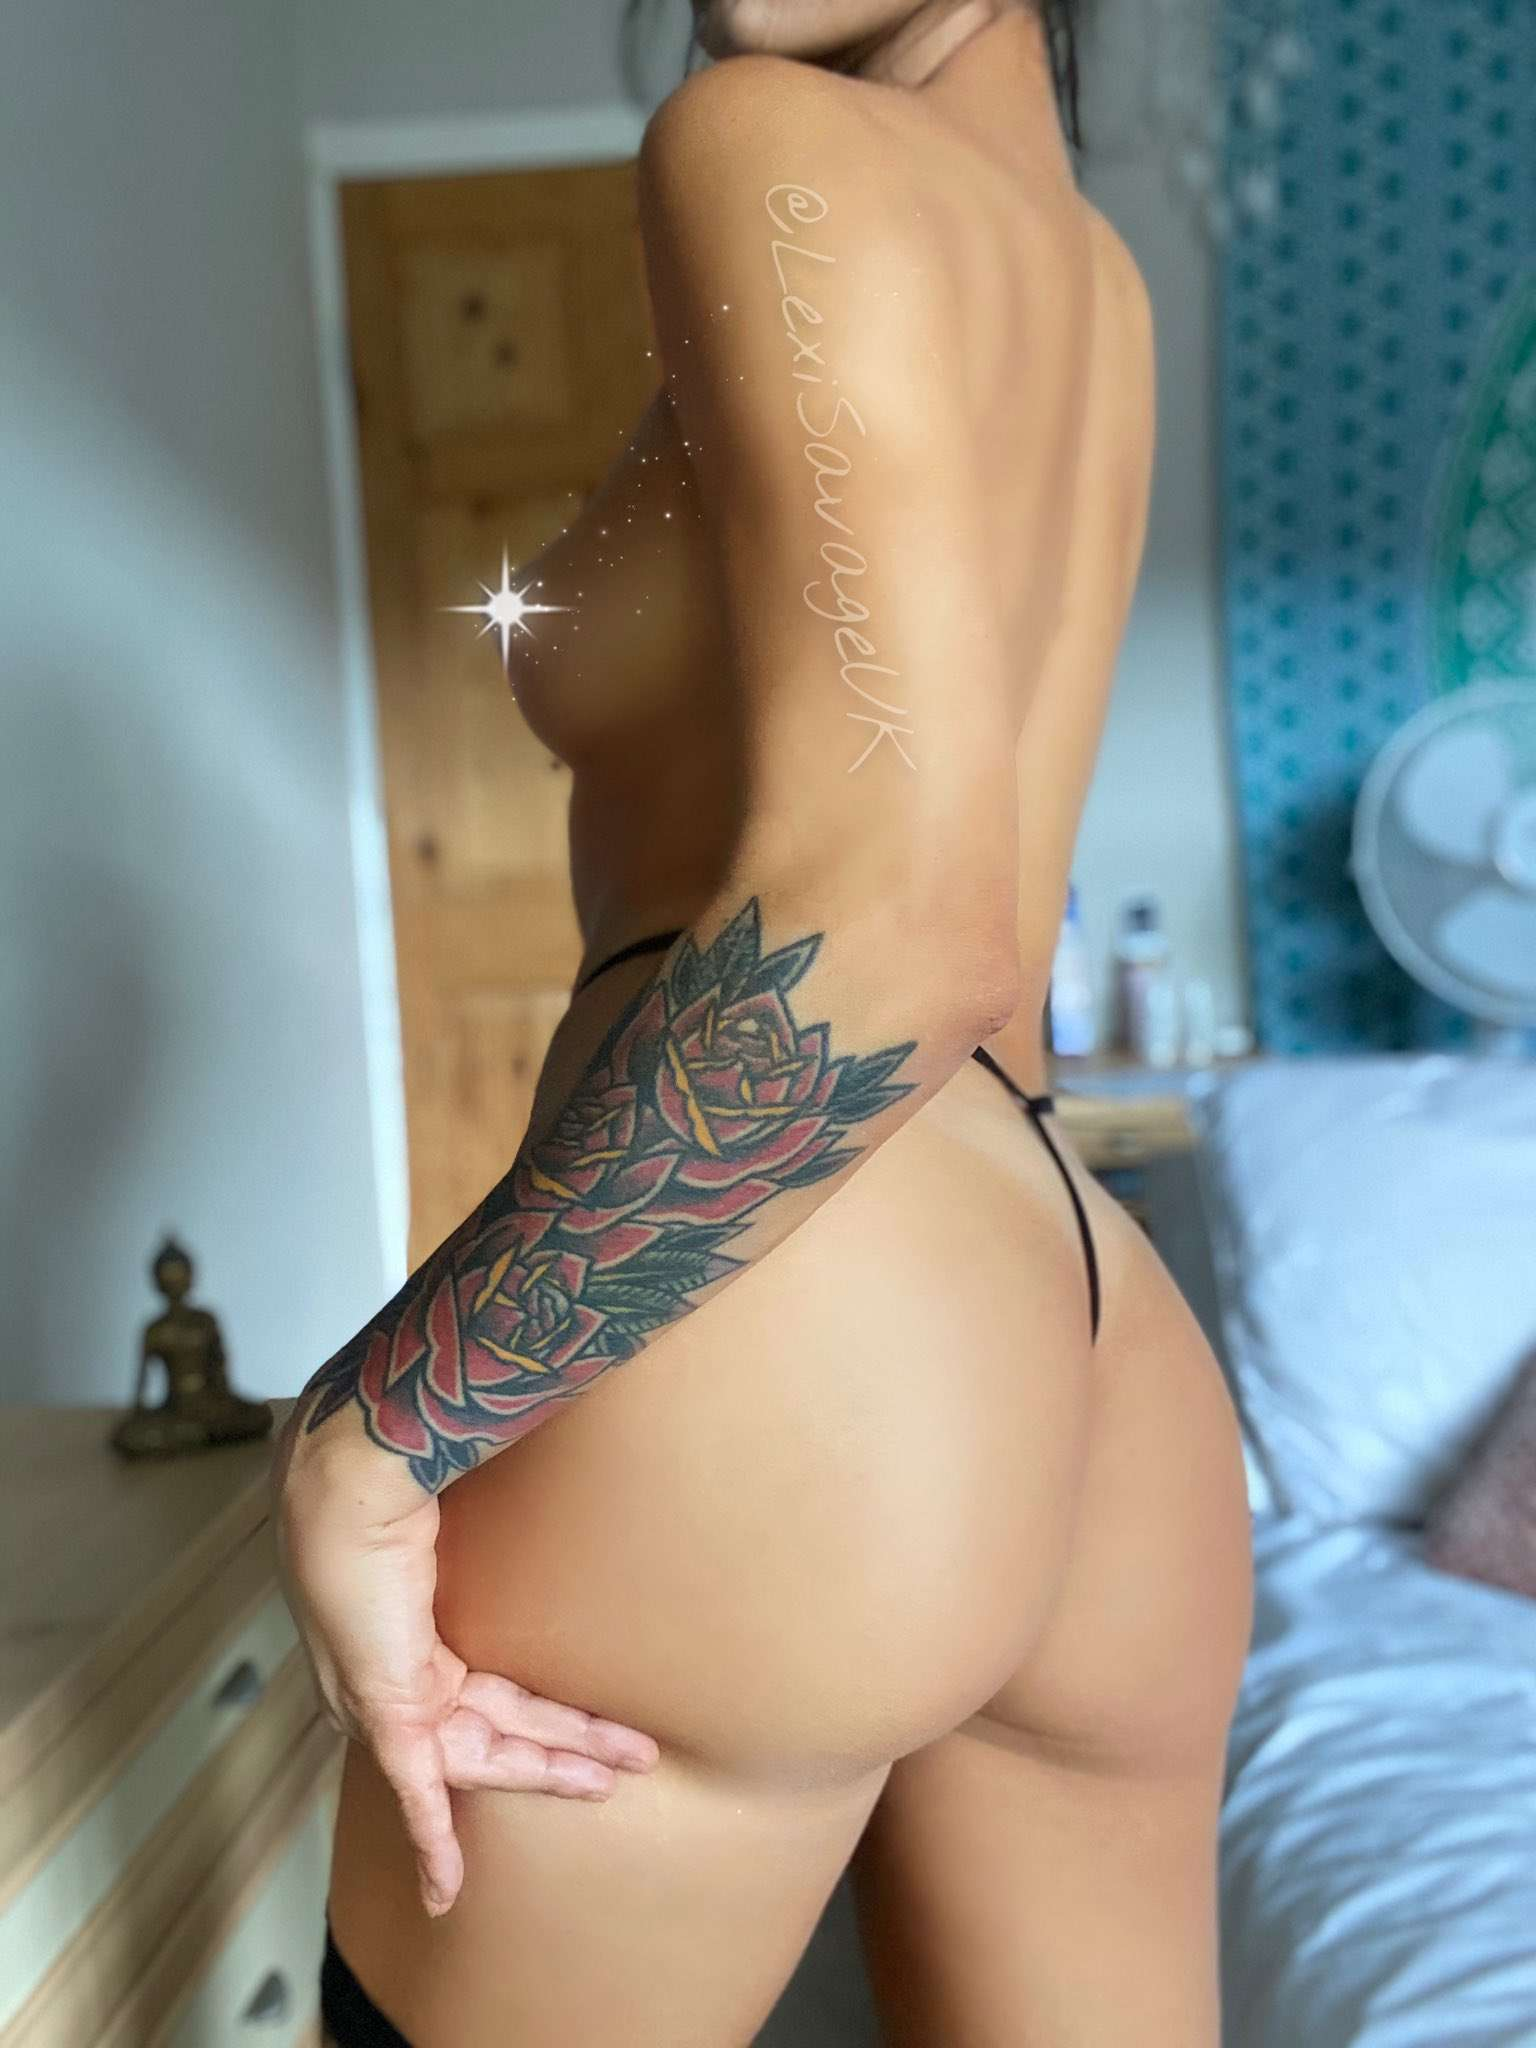 Fit Naked Girls Archives